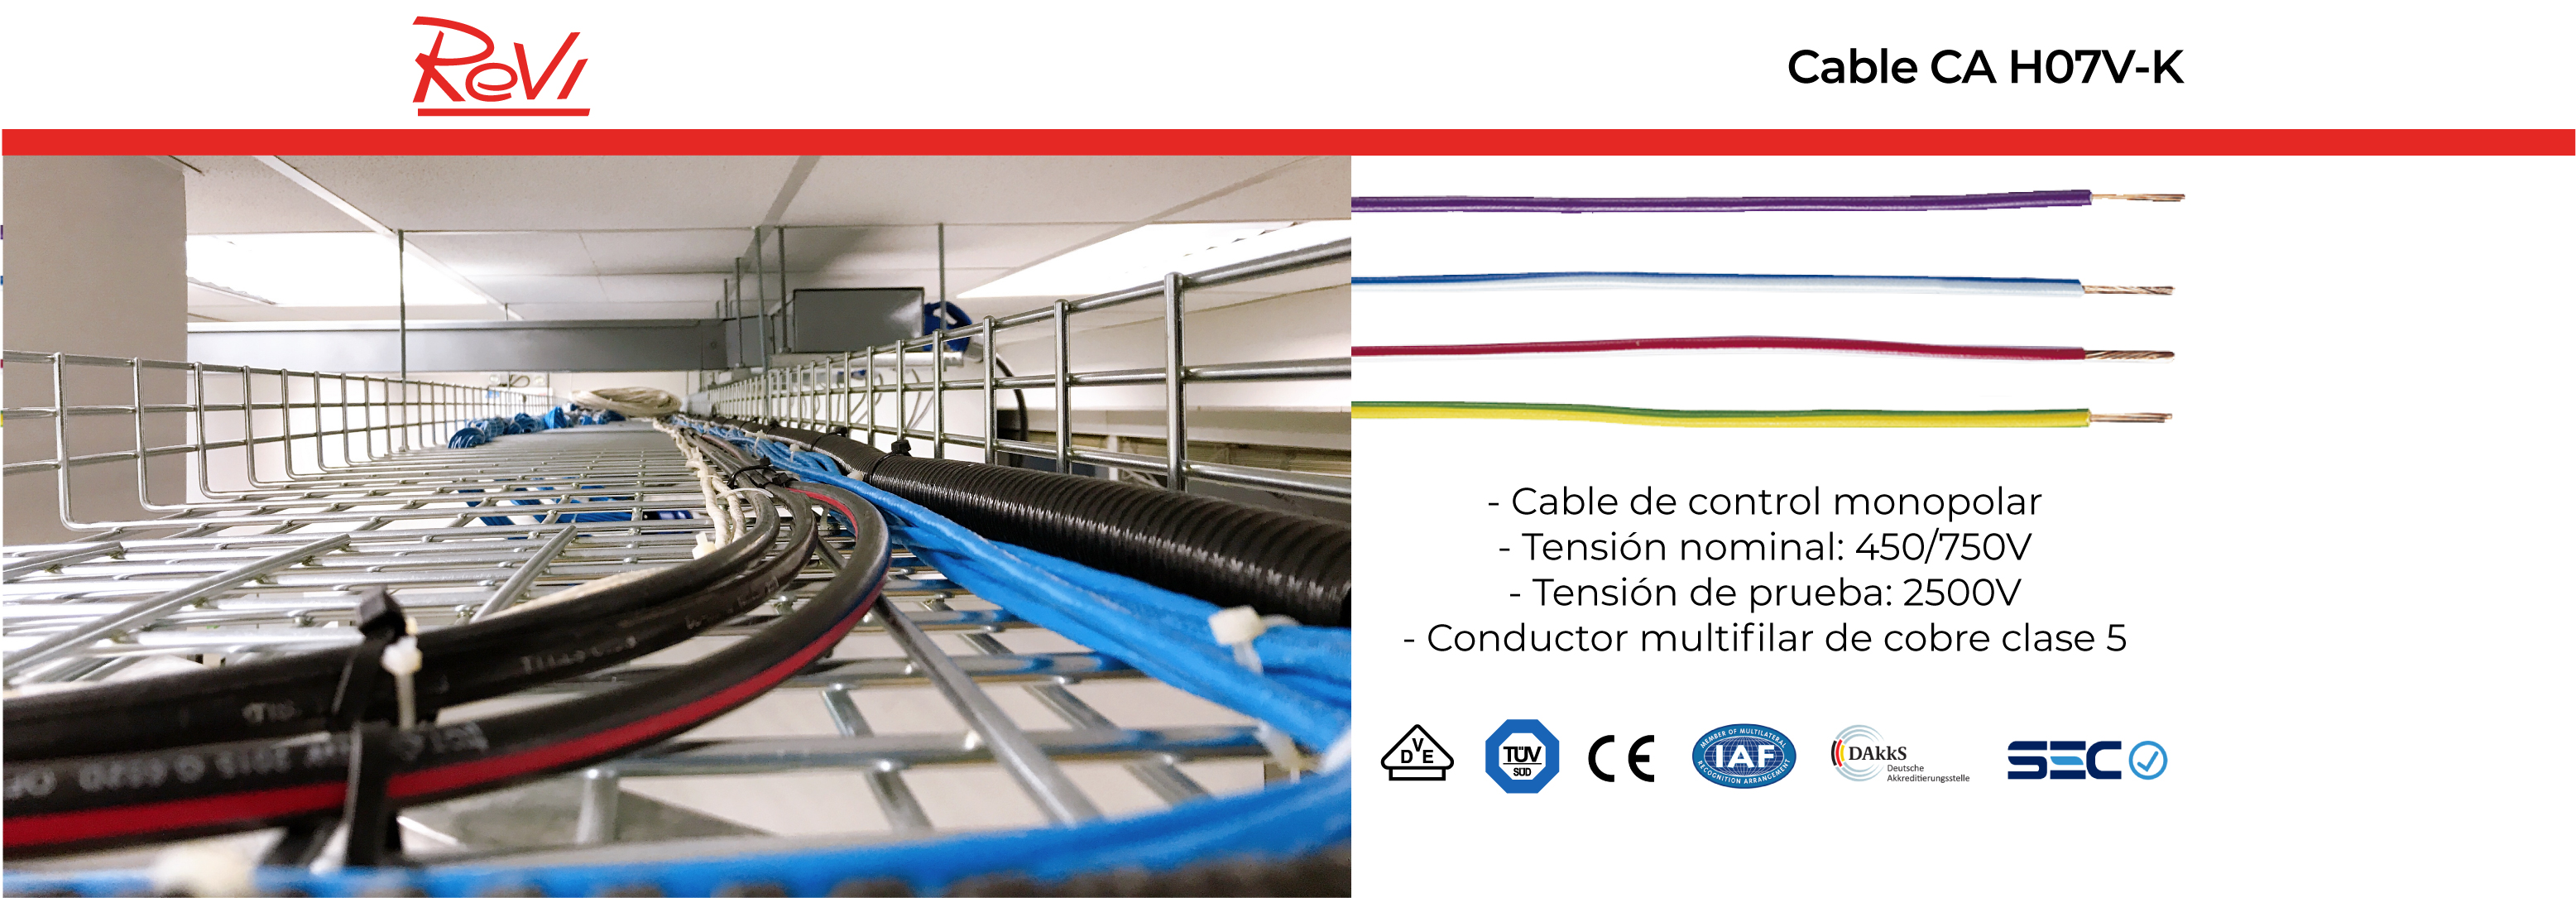 Cable CA H07V-K